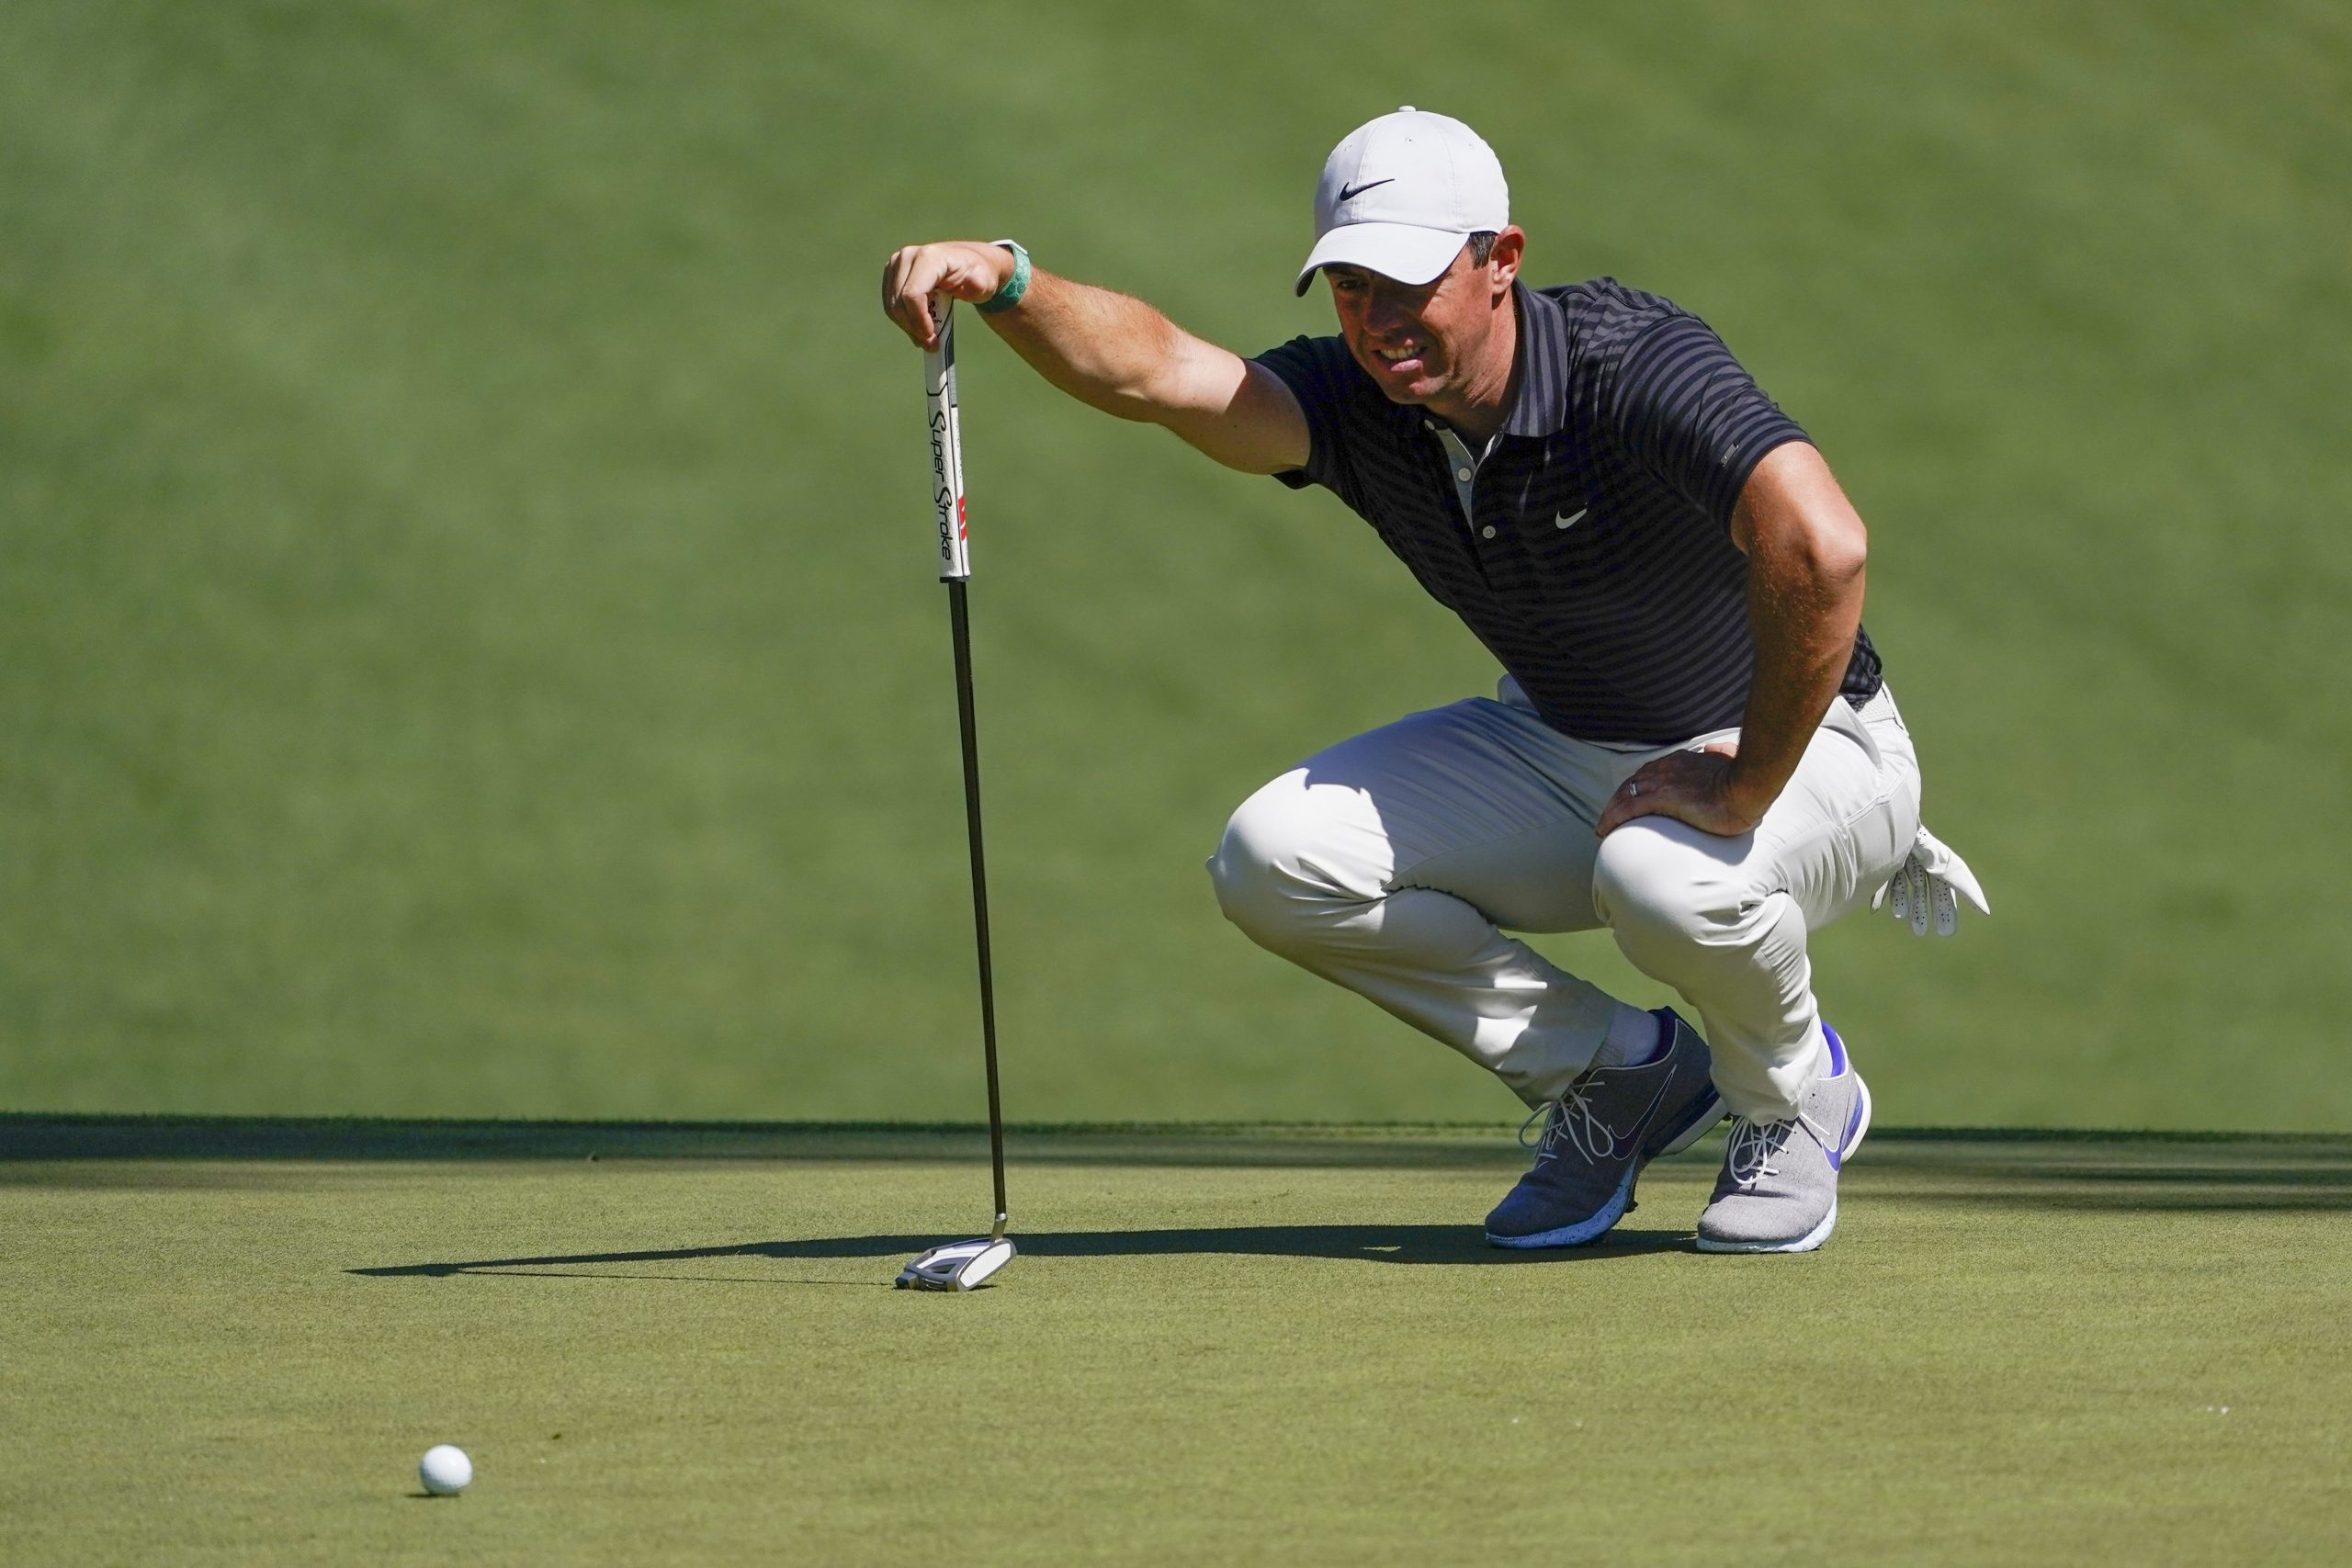 Rory McIlroy lines up a putt on the 10th green during a practice round for The Masters golf tournament at Augusta National Golf Club.